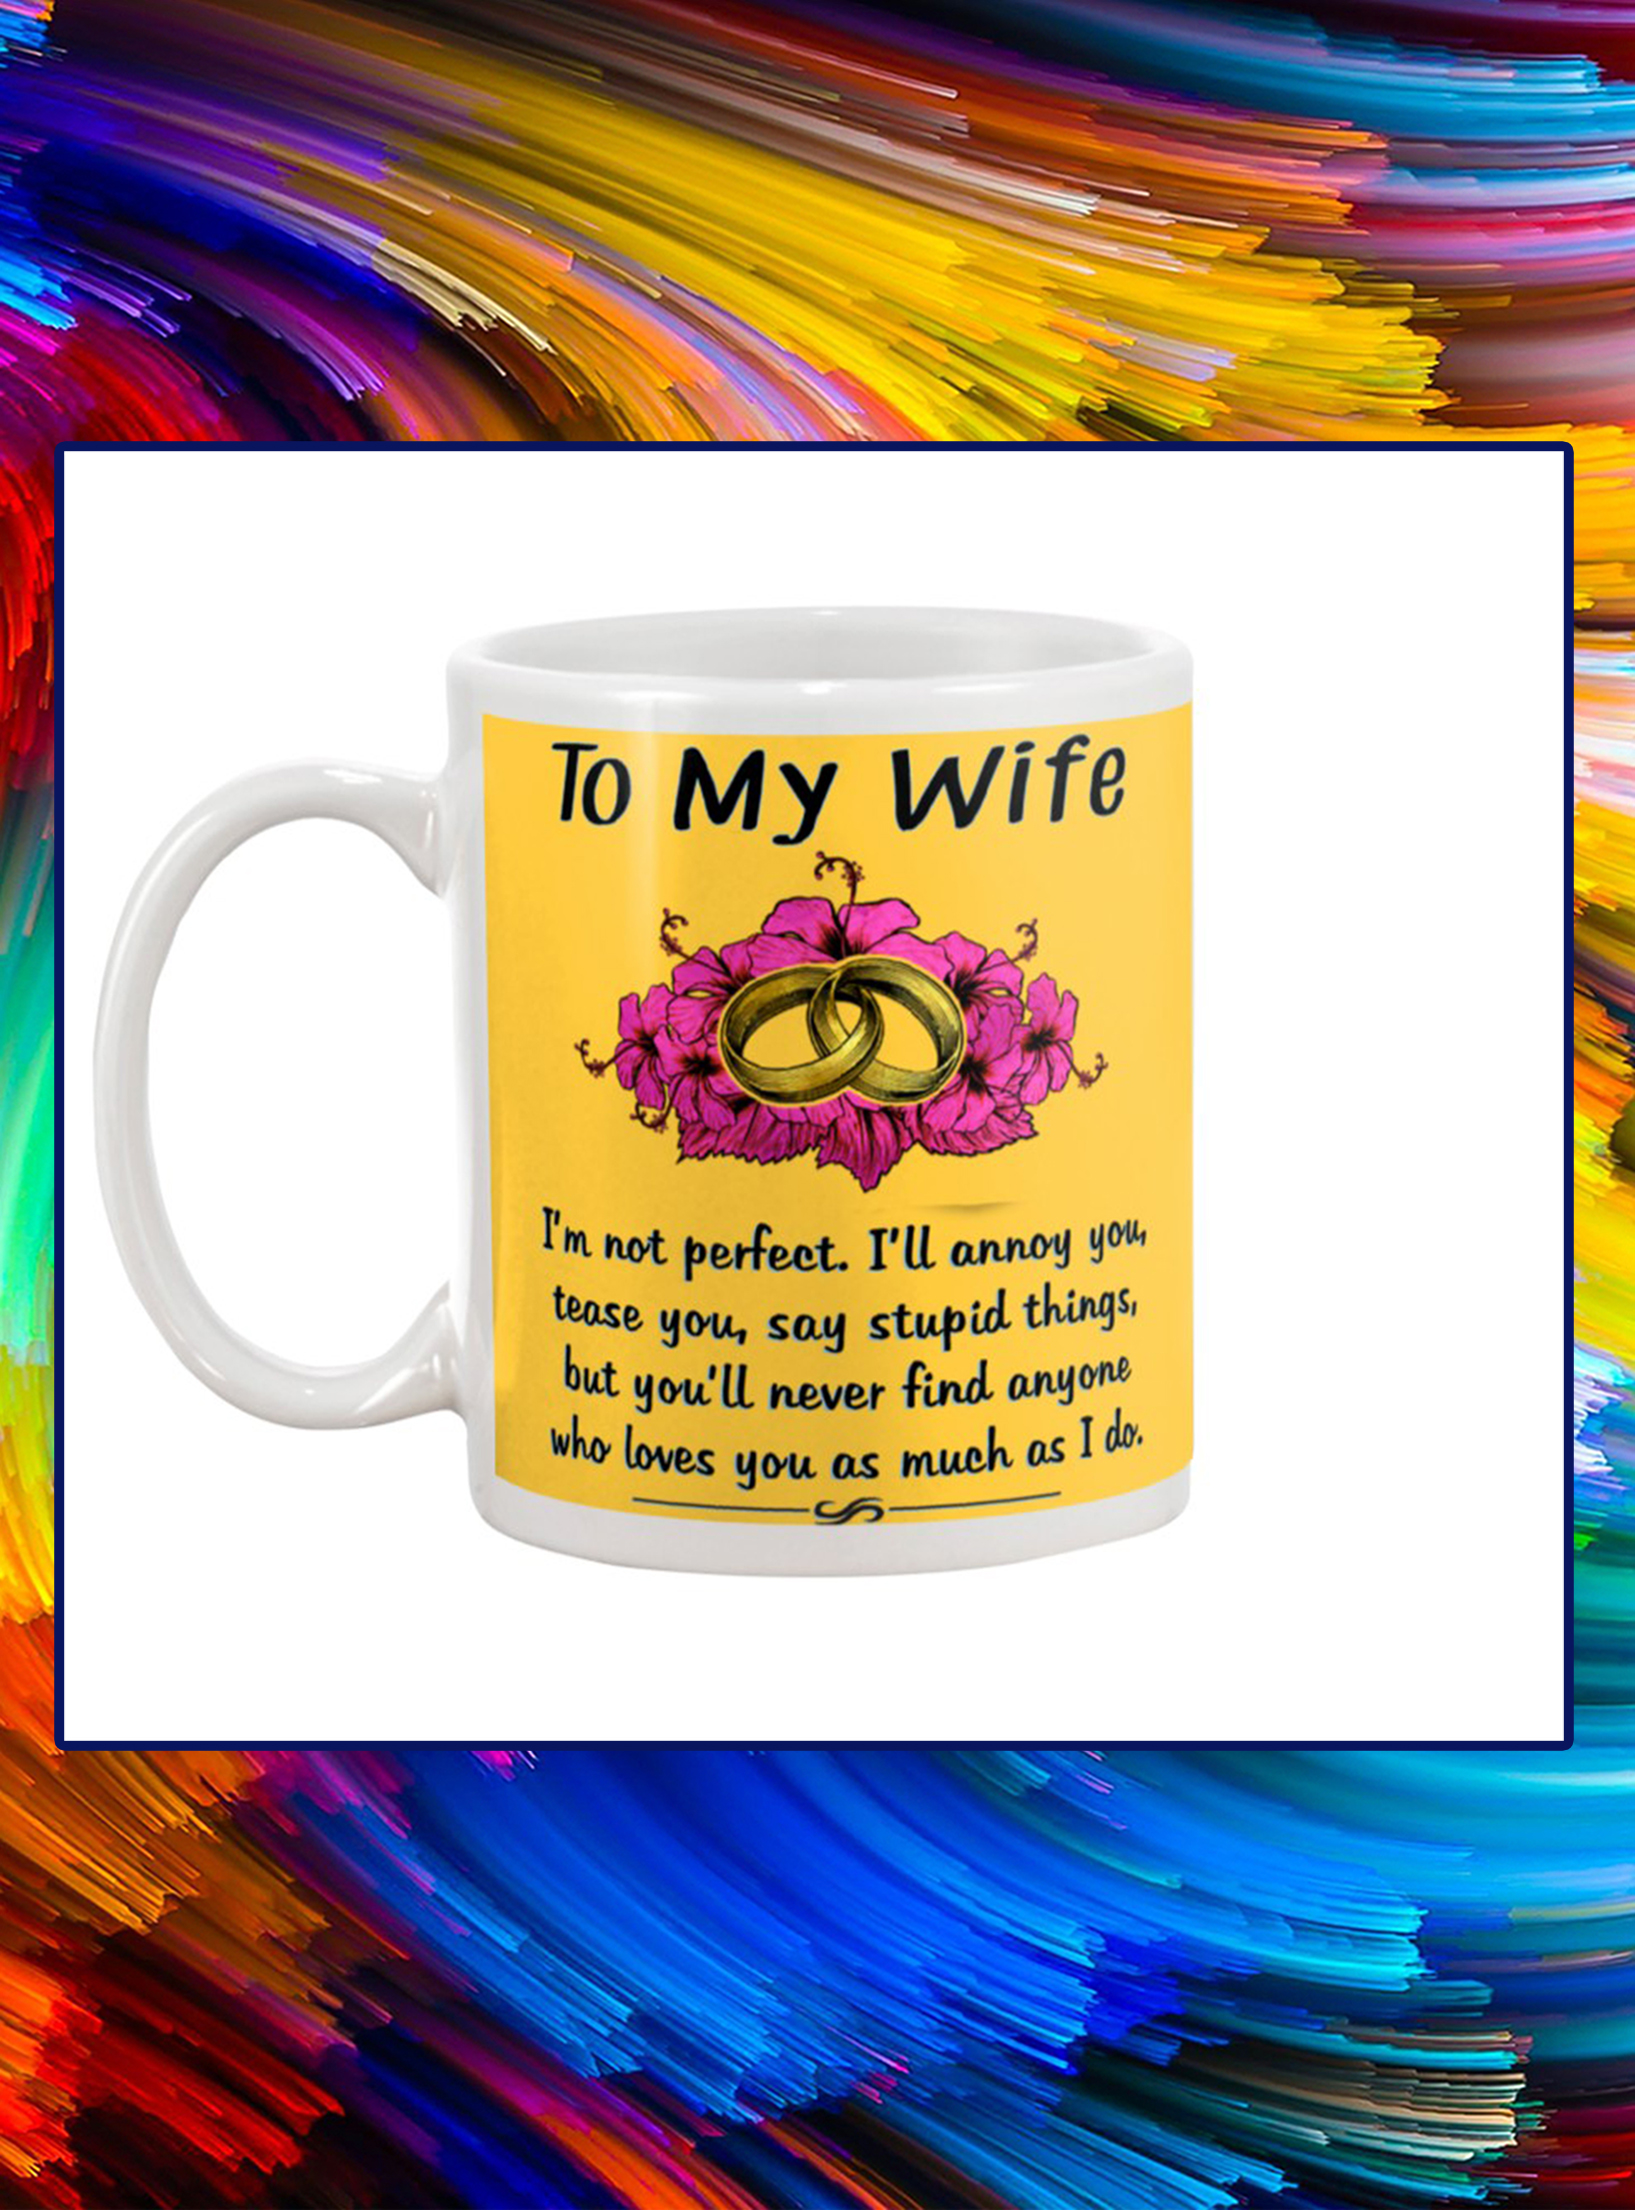 Ring to my wife i'm not perfect mug- gold